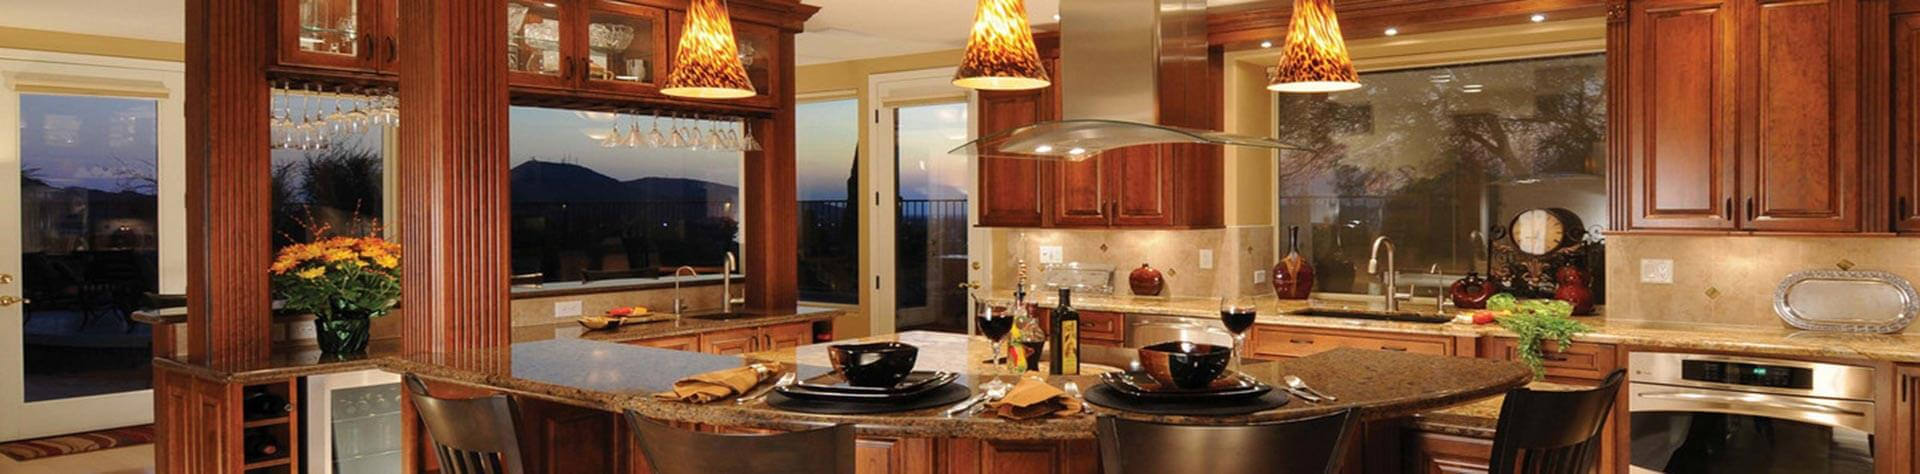 Our Mission Vision Republic West Remodeling Kitchen Remodeling Phoenix